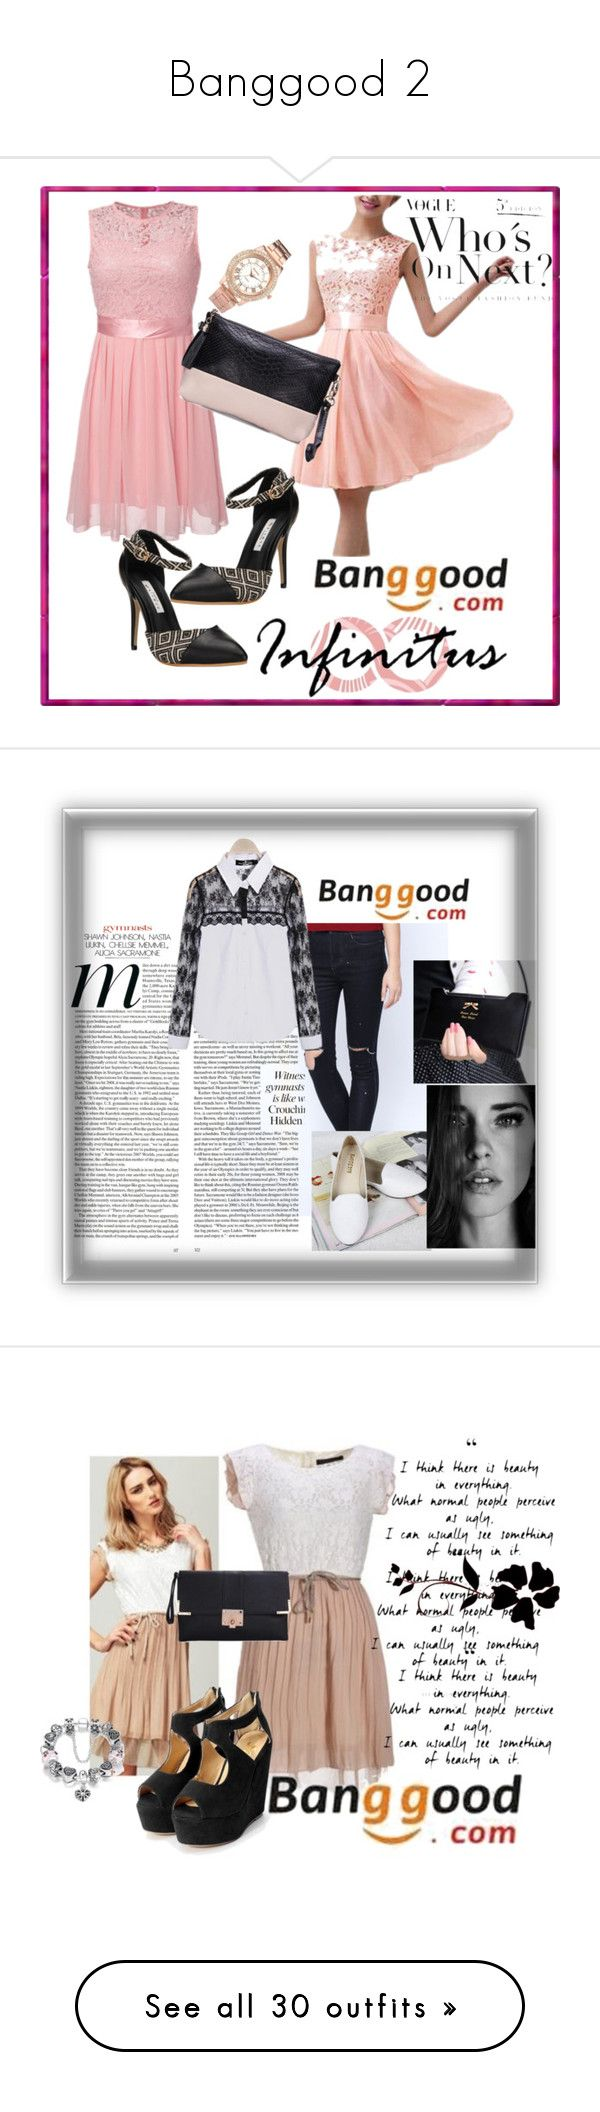 """""""Banggood 2"""" by ahmetovic-mirzeta ❤ liked on Polyvore featuring Smashbox, Justin Bieber, Lime Crime, New Look, Maybelline, Jon Richard, Yves Saint Laurent, Elegant Touch, Le Métier de Beauté and Post-It"""